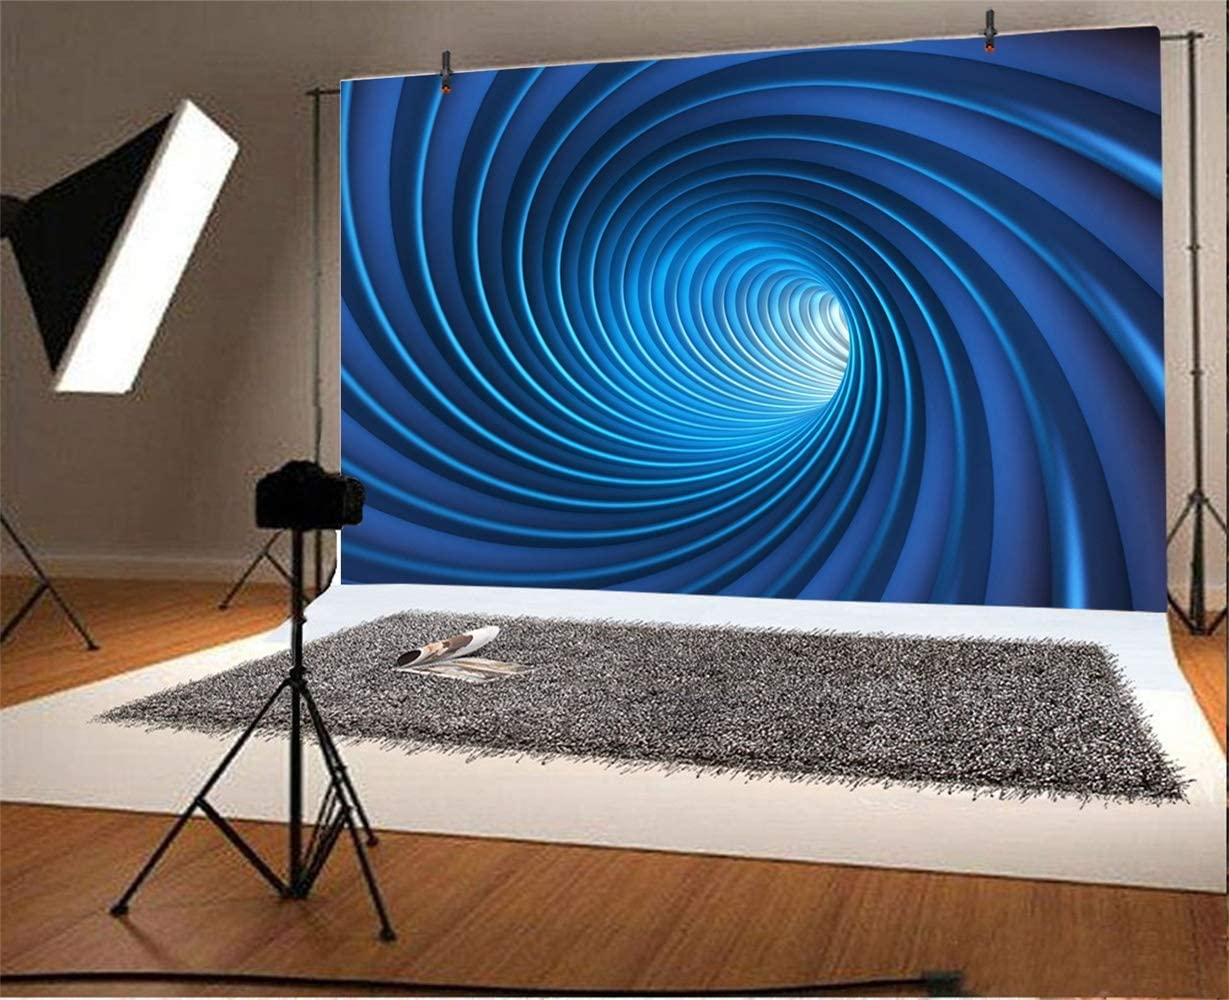 Abstract Blue Swirl Tube Backdrop 10x6.5ft Polyester Mysterious Spiral Vortex Endless Tunnel Futuristic Theme Novelty Background Child Kids Adult Shoot Party Banner Wallpaper Studio Props